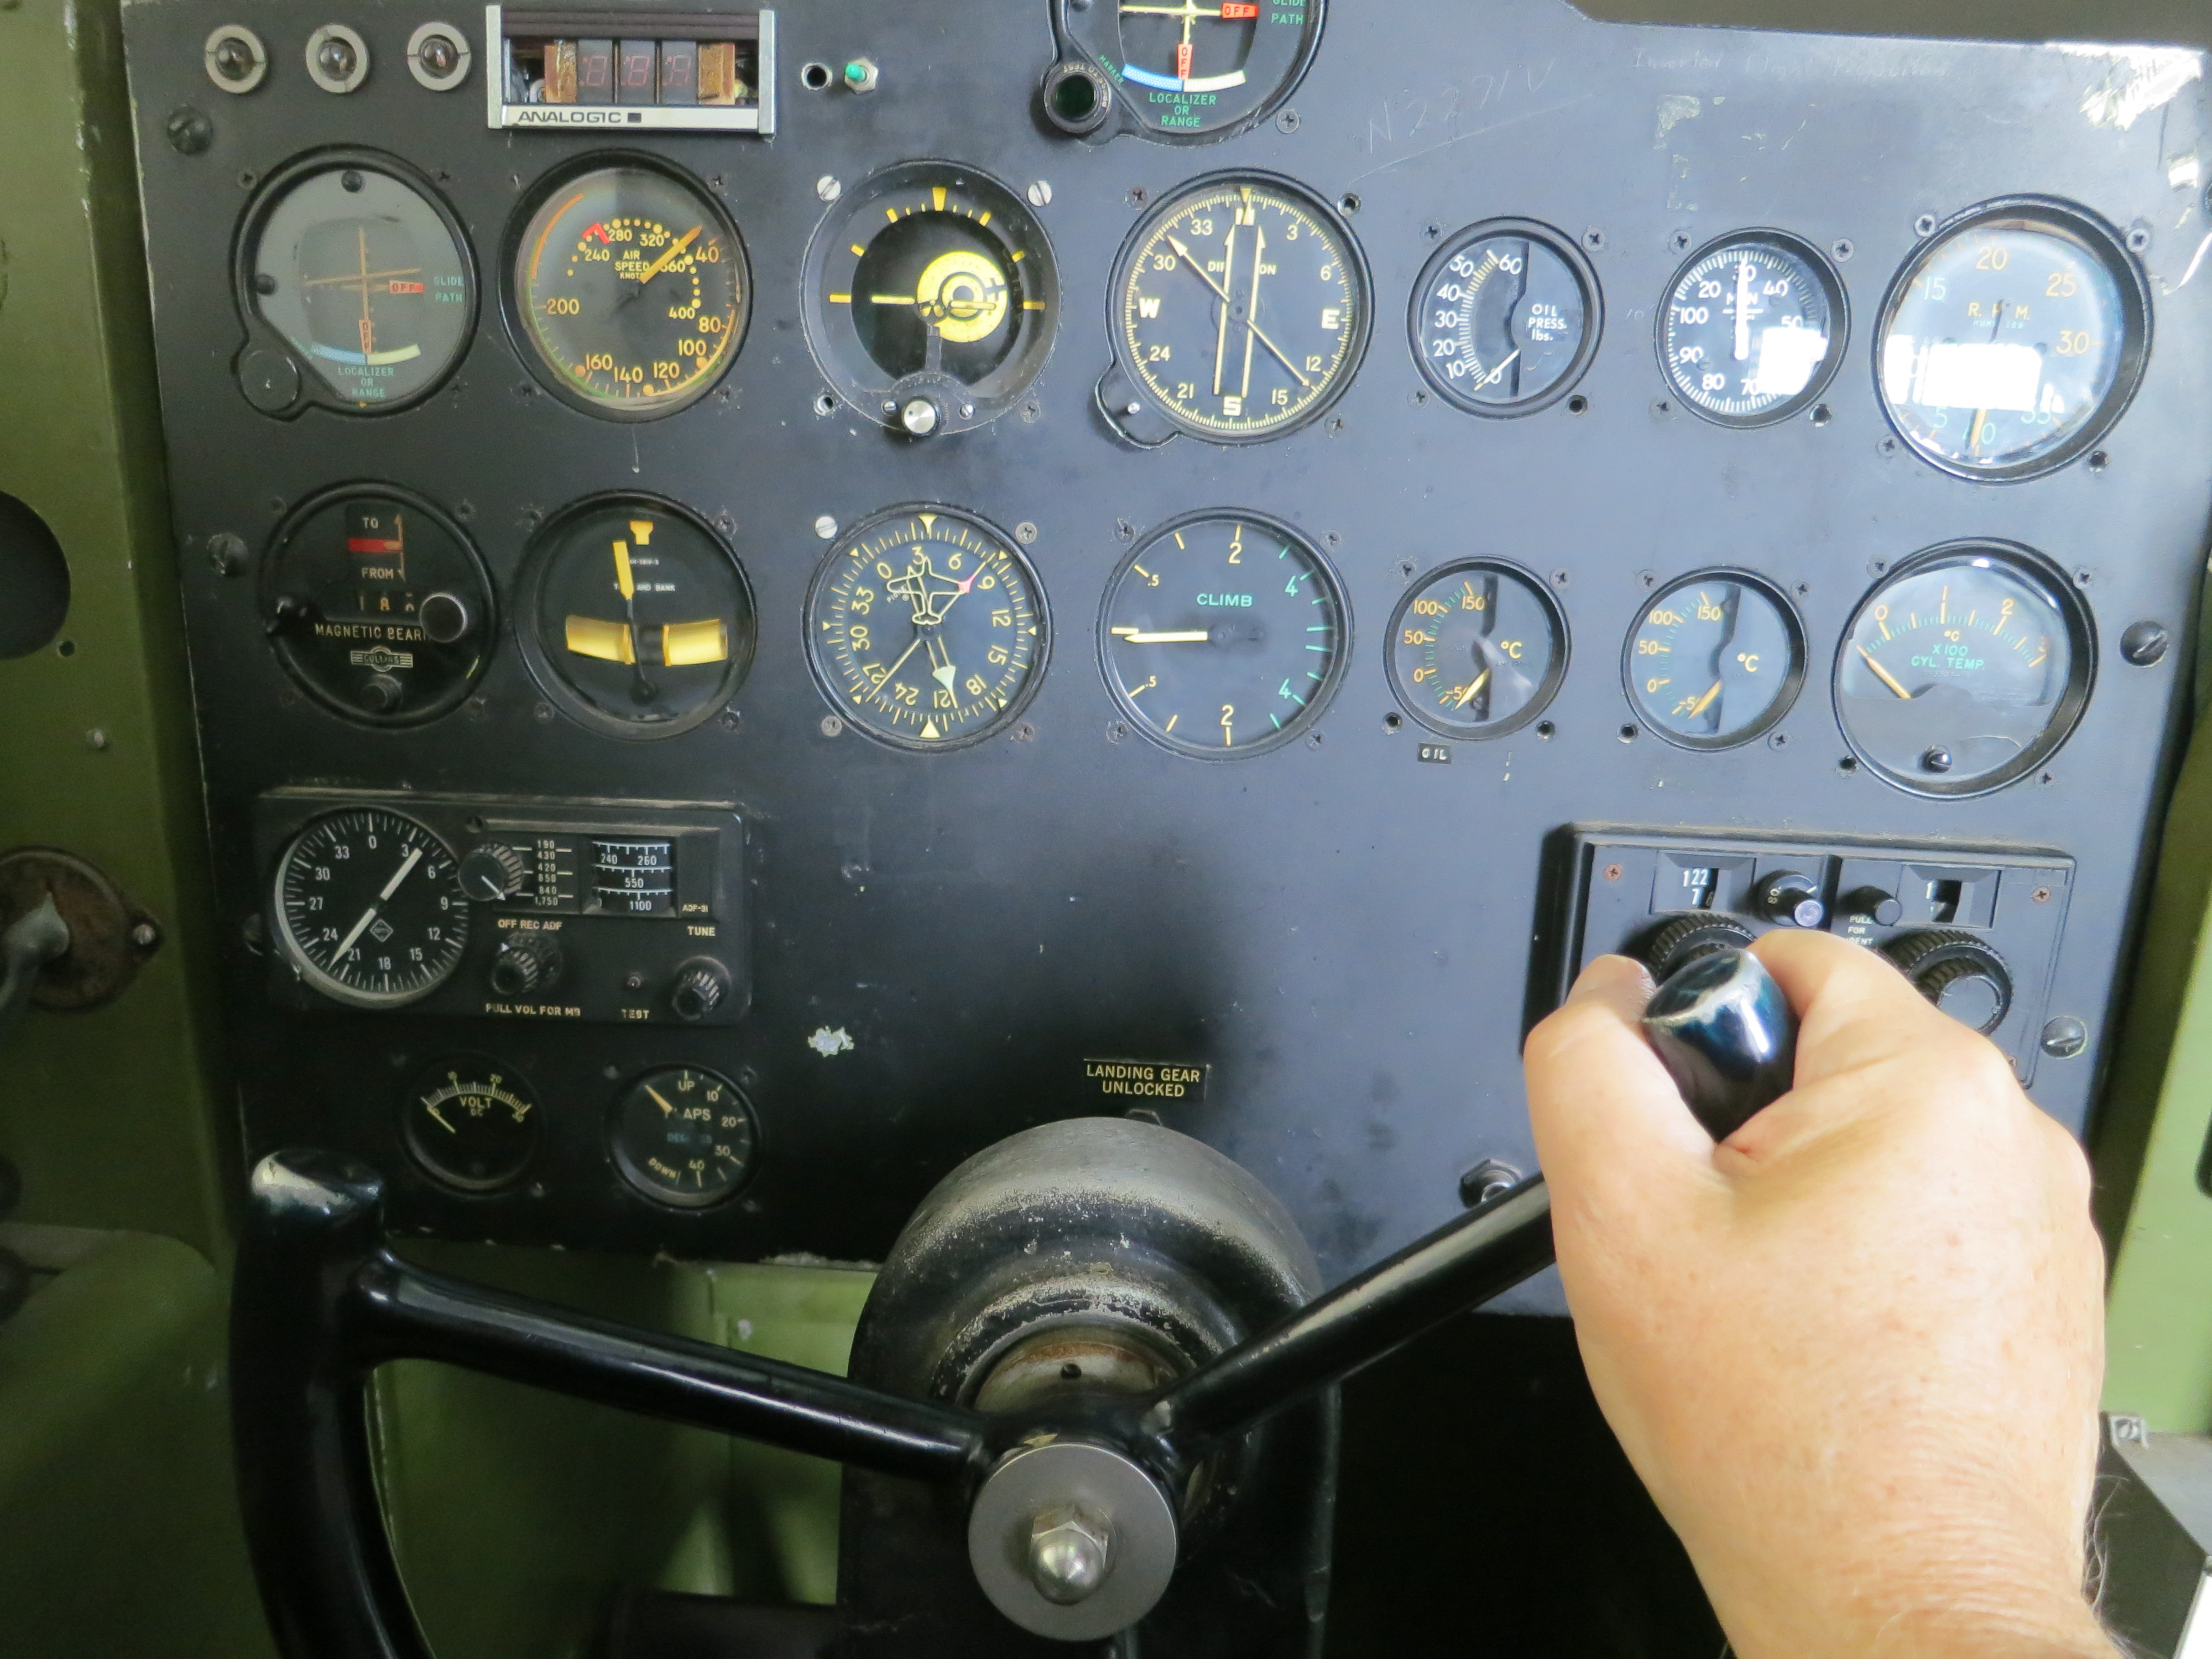 Flight simulator for a C-46 at the Tillamook Air Museum in Oregon.